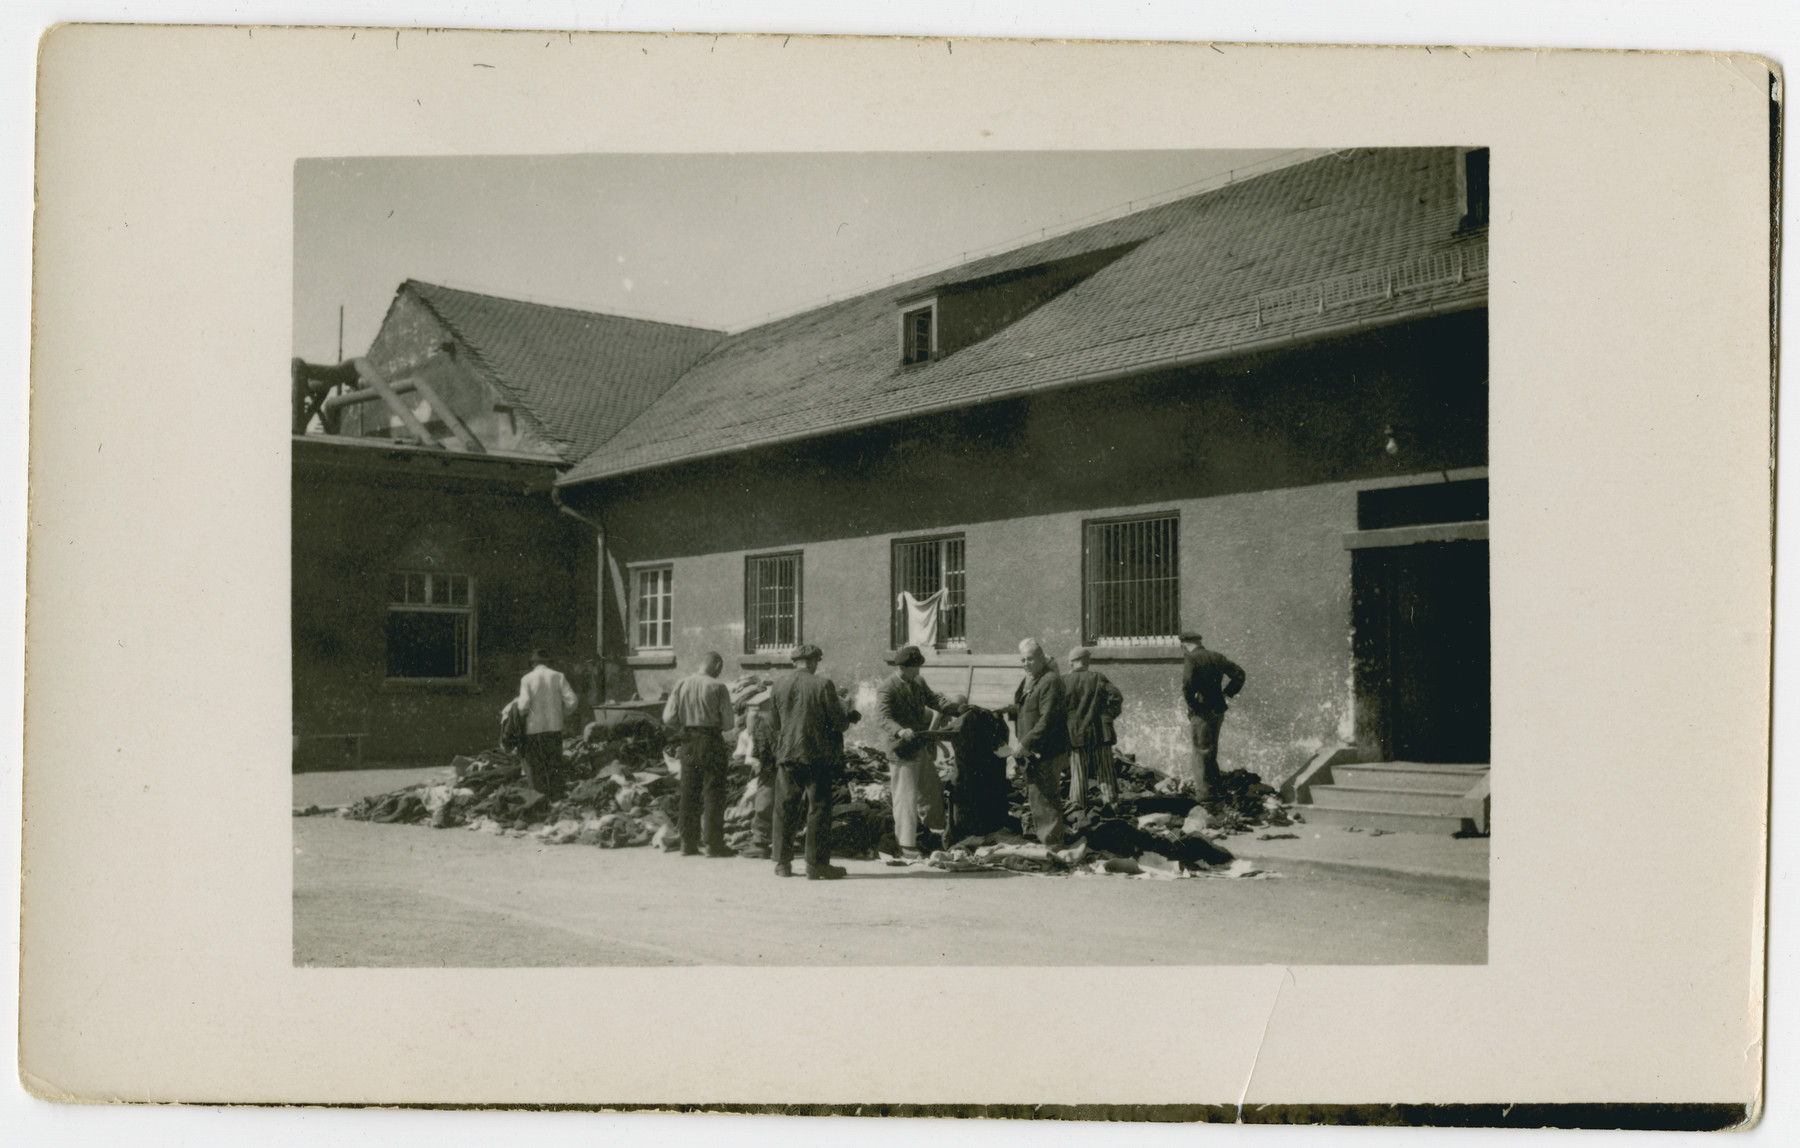 Survivors of the Dachau concentration camp sort through a pile of clothing outside a building following liberation.